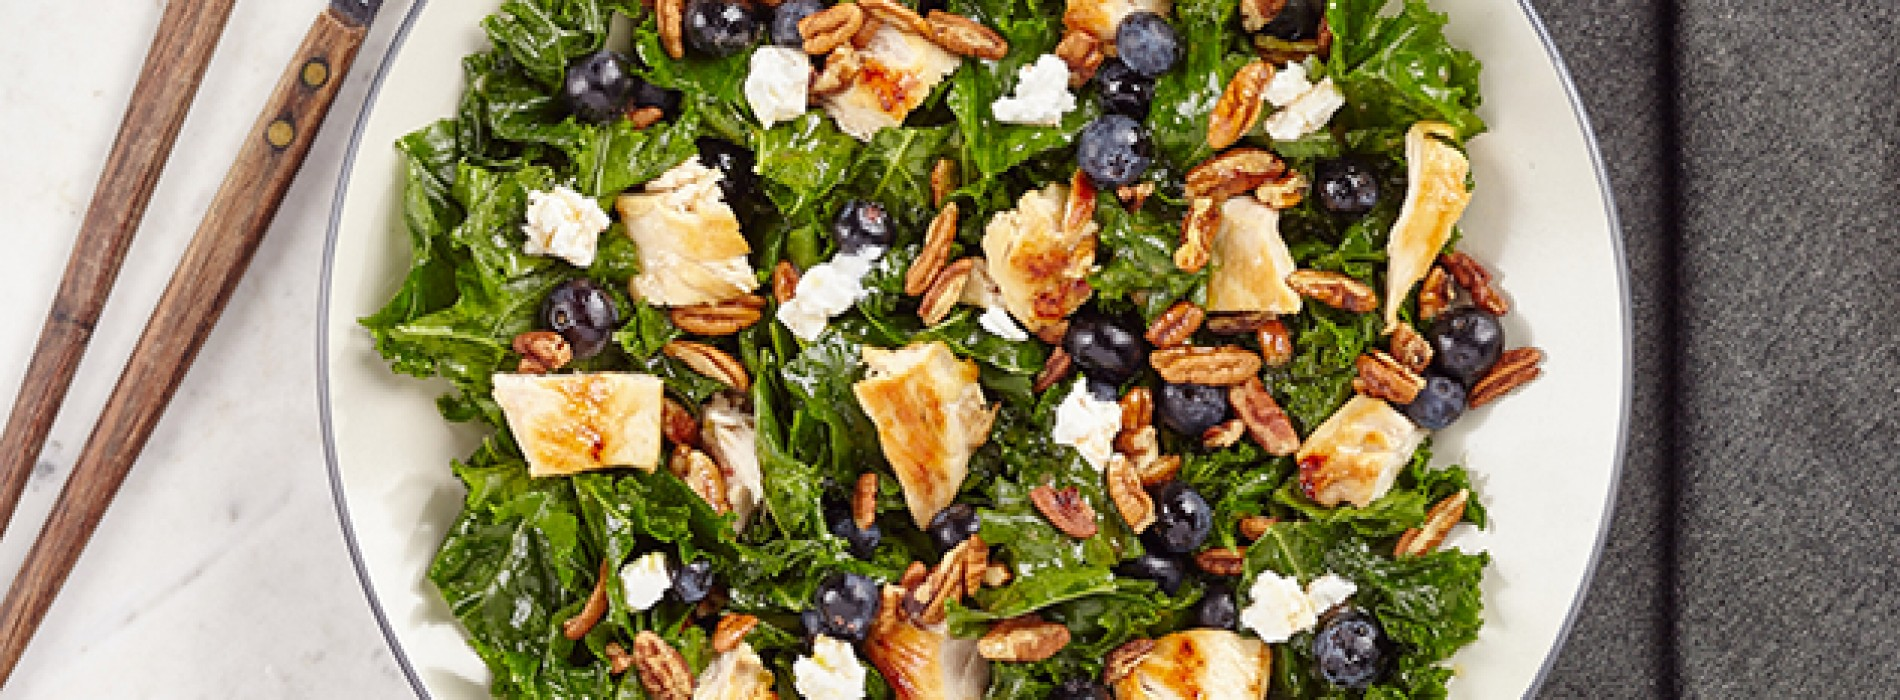 Kale Chicken Salad with Blueberries, Pecans and Goat Cheese